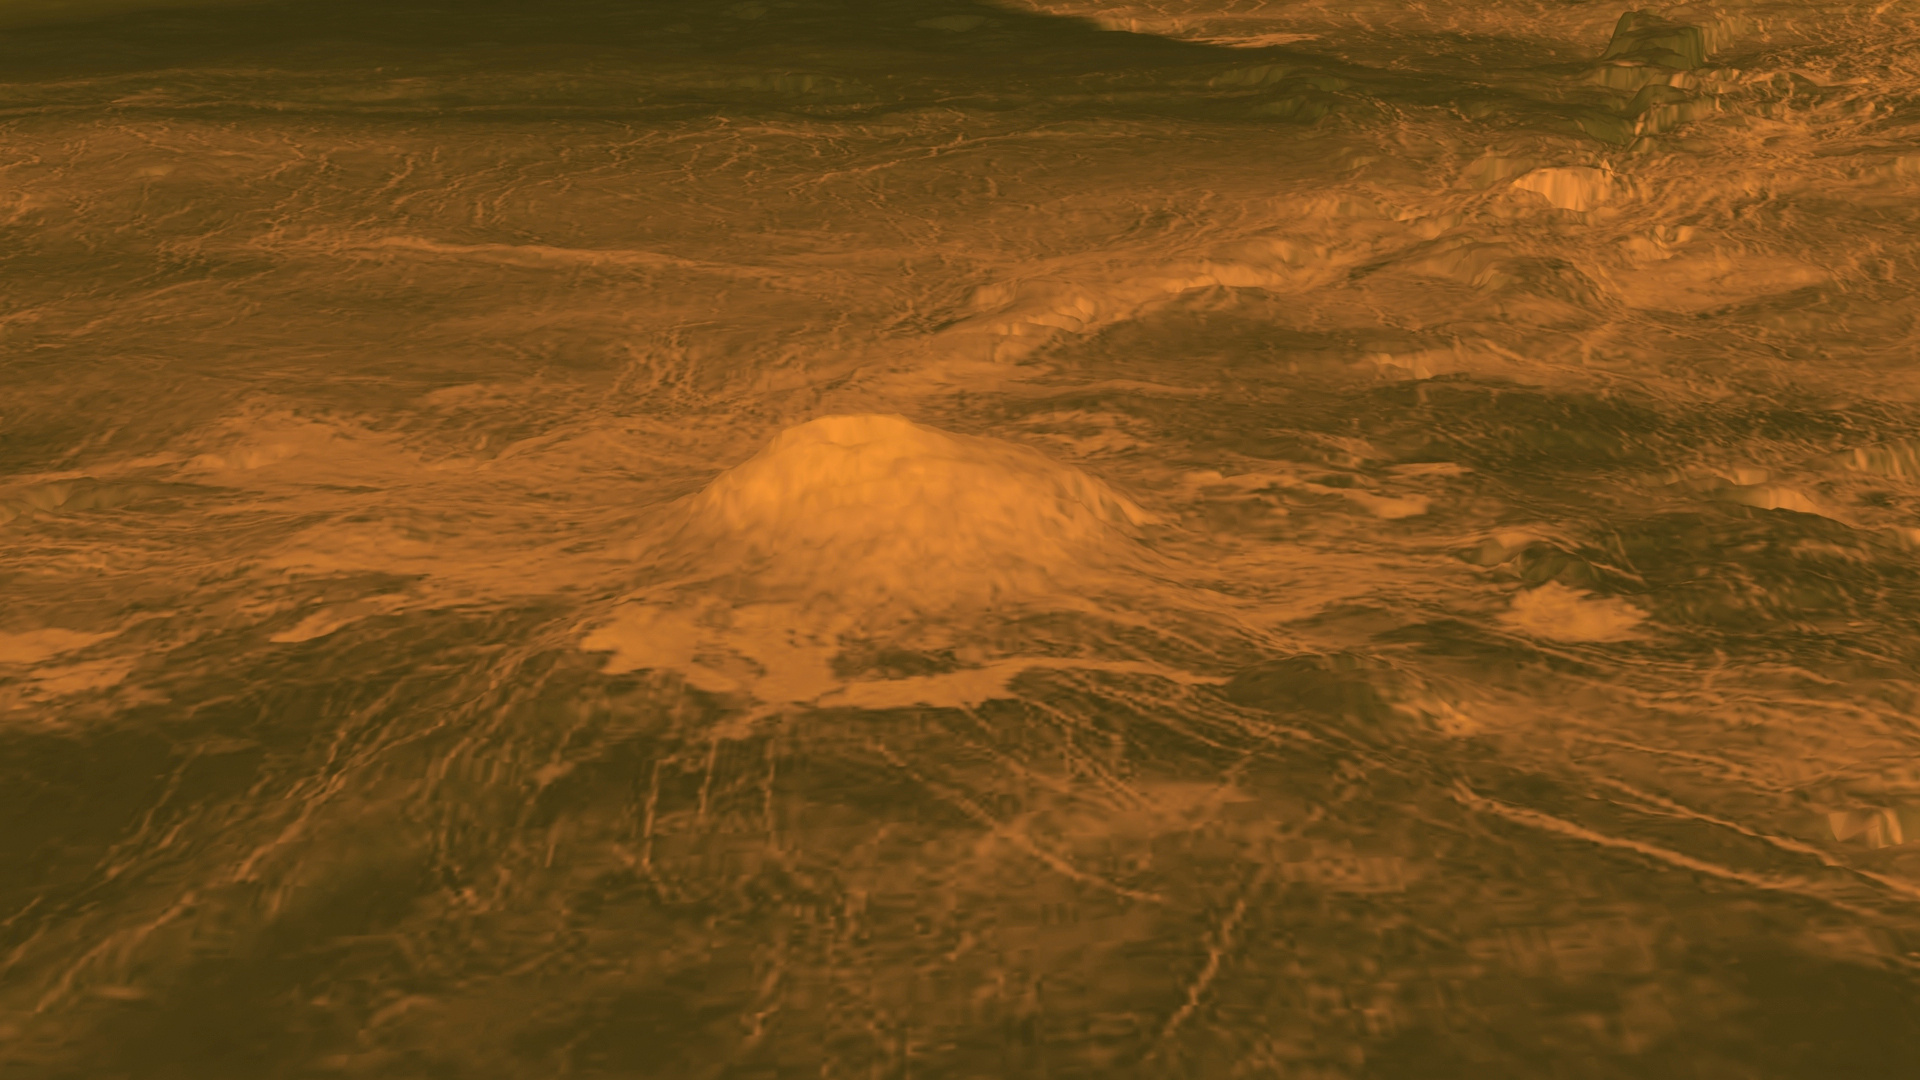 This figure displays an elevation model of Idunn Mons (46 S; 146 W), a volcano with a diameter of 200 kilometres (124 miles) located at Imdr Regio on Venus. Image credit: NASA/JPL-Caltech/ESA.